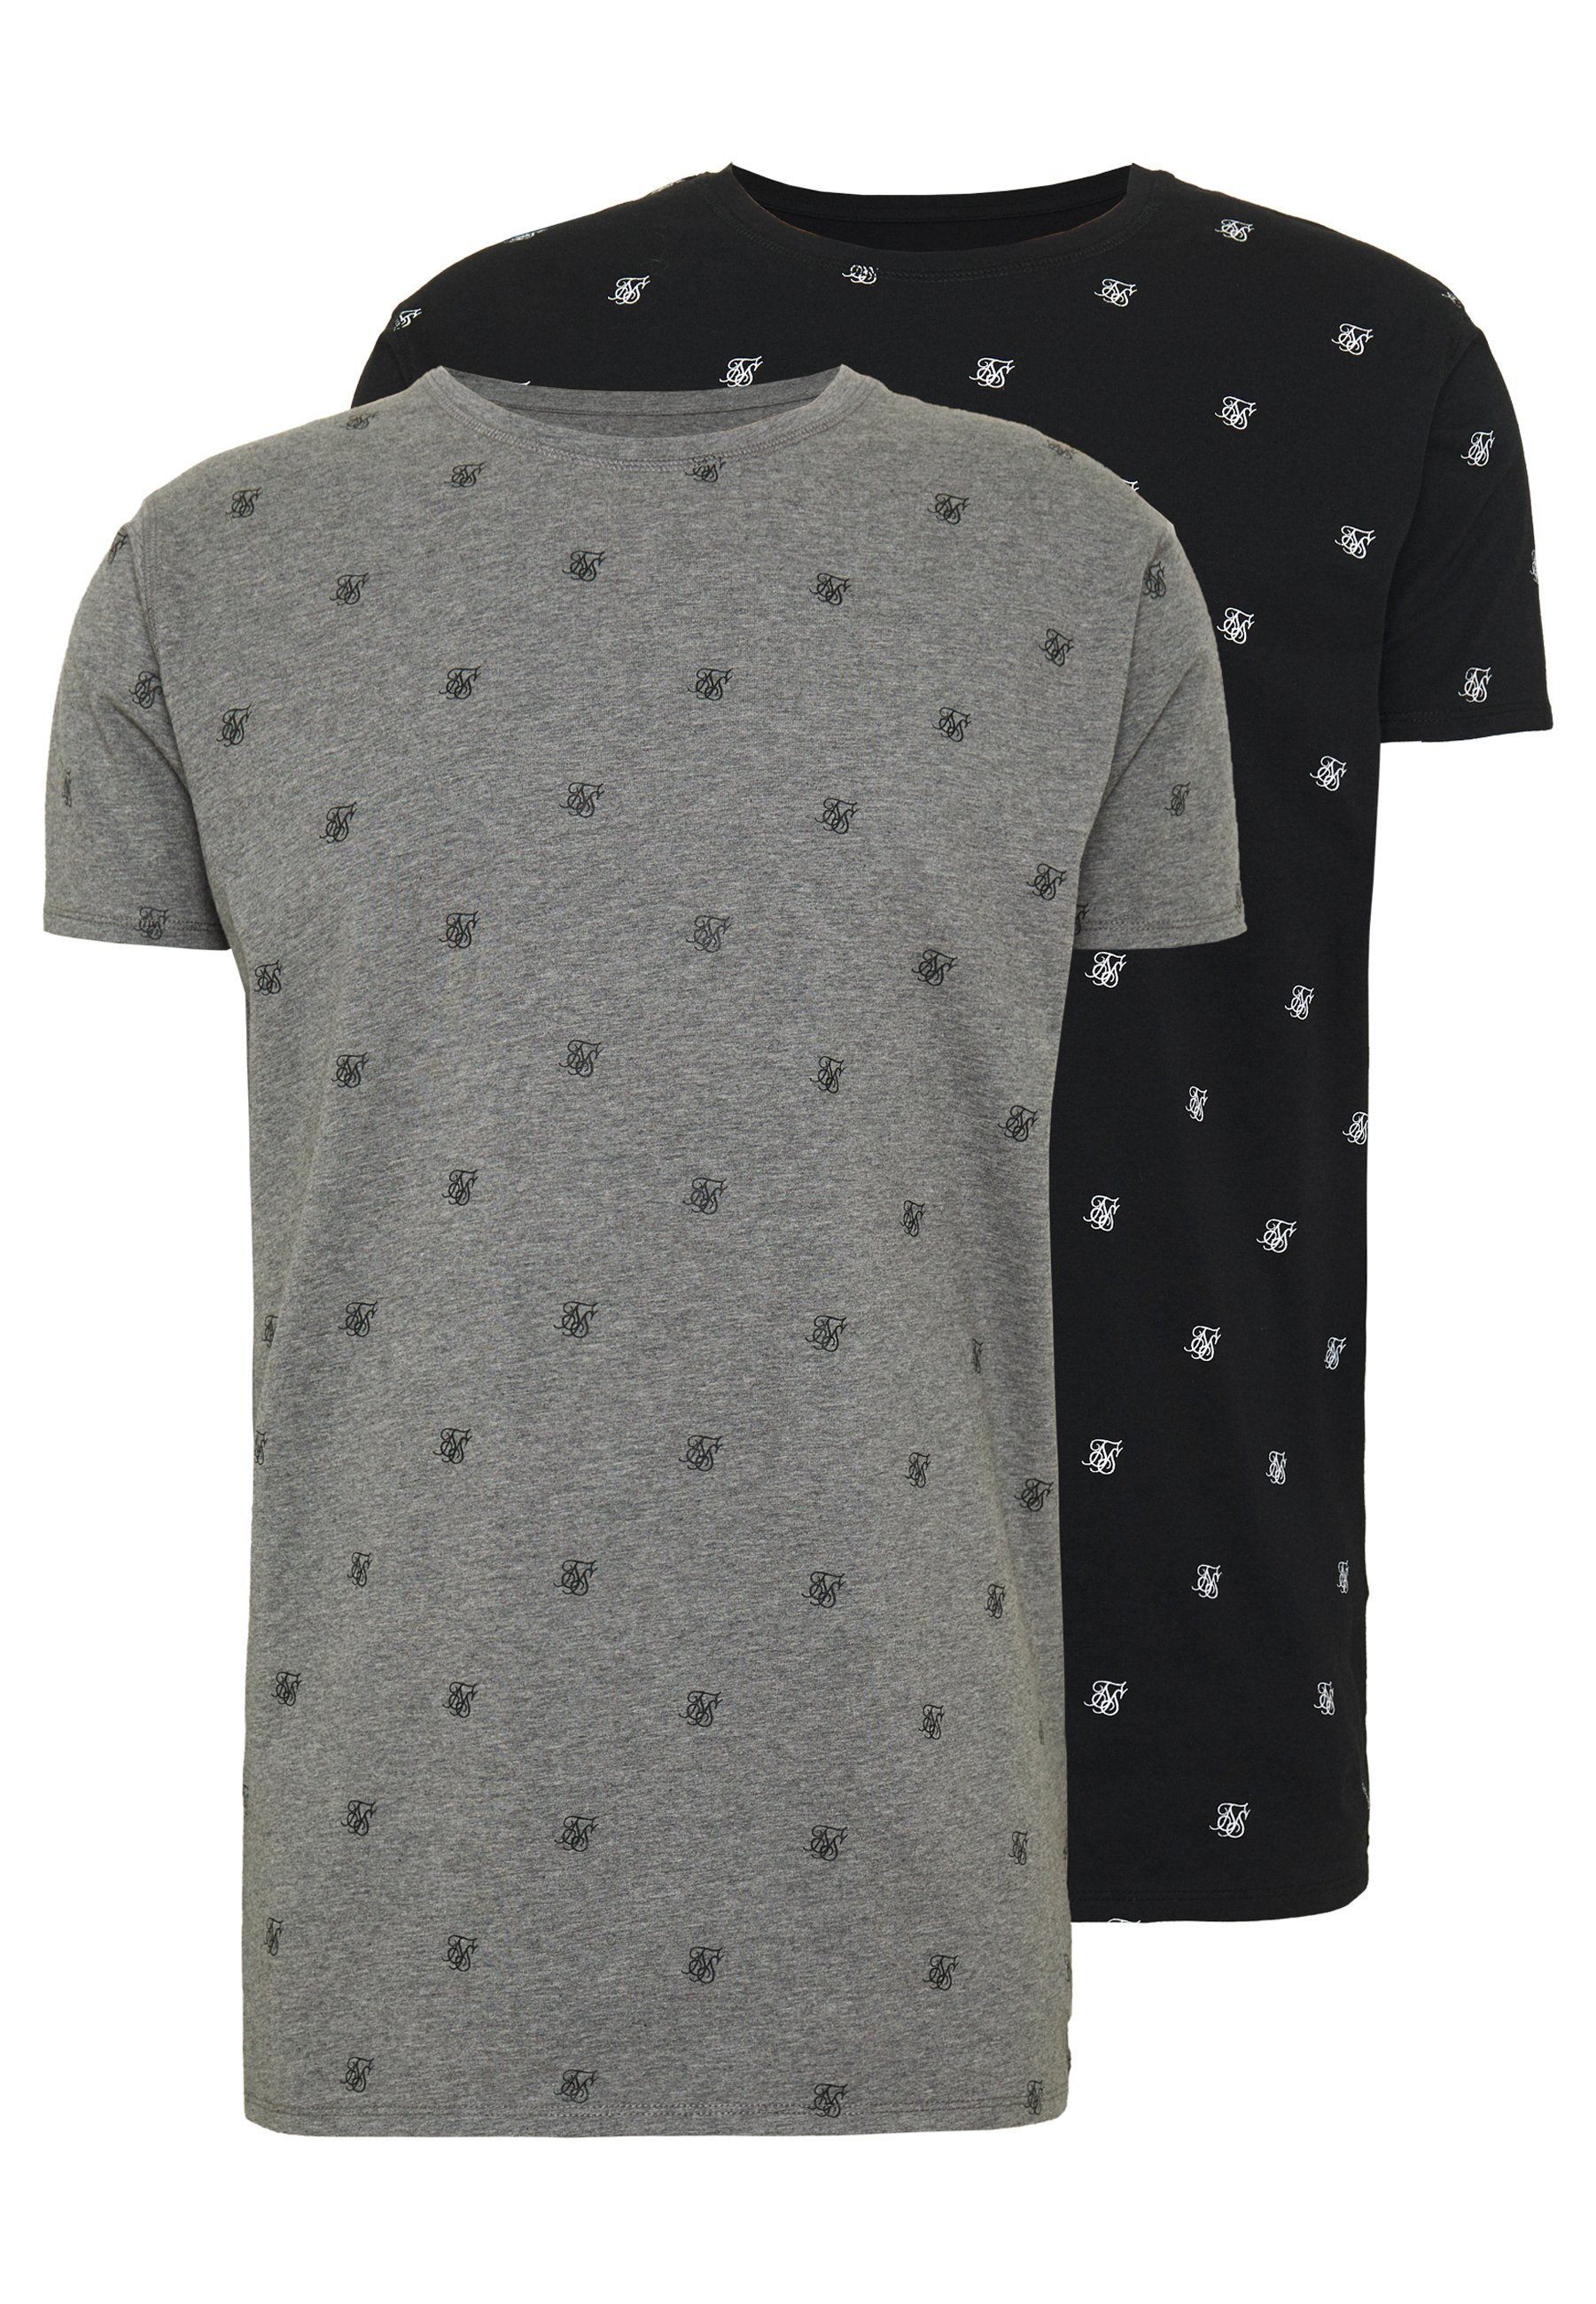 Siksilk Lounge Tee 2 Pack - T-shirts Med Print Black/grey/svart